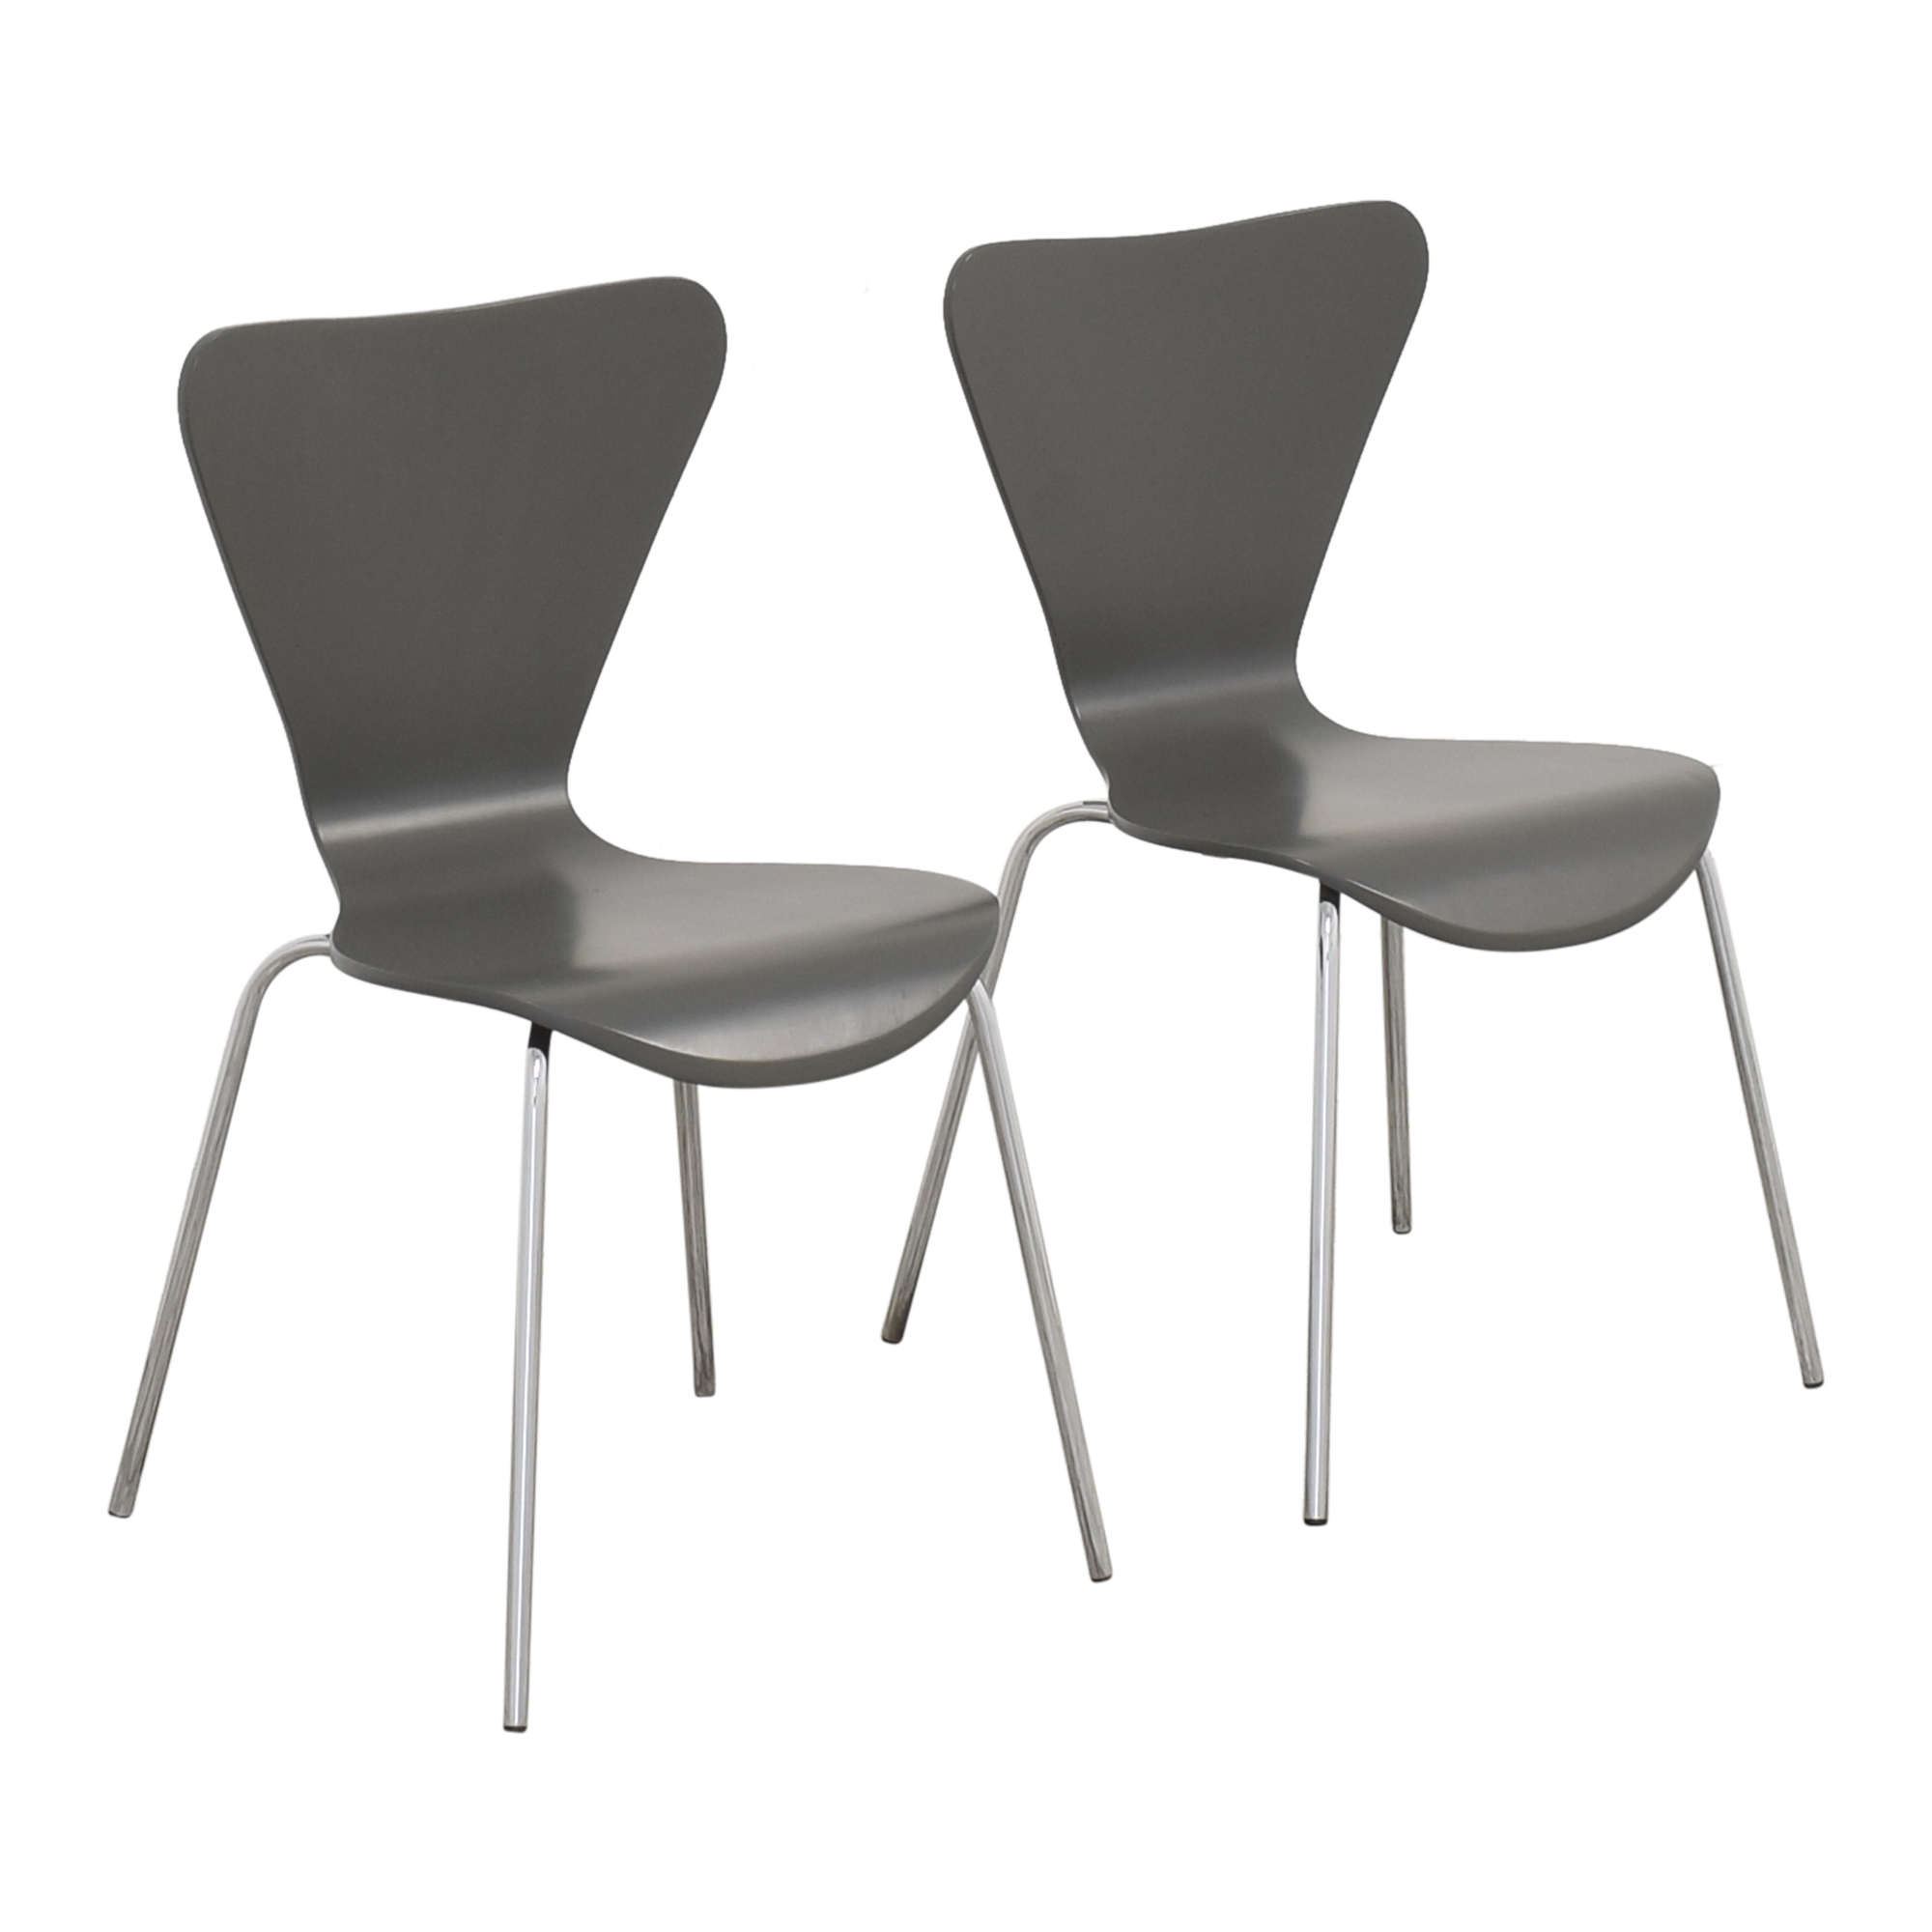 Room & Board Modern Pike Chairs sale